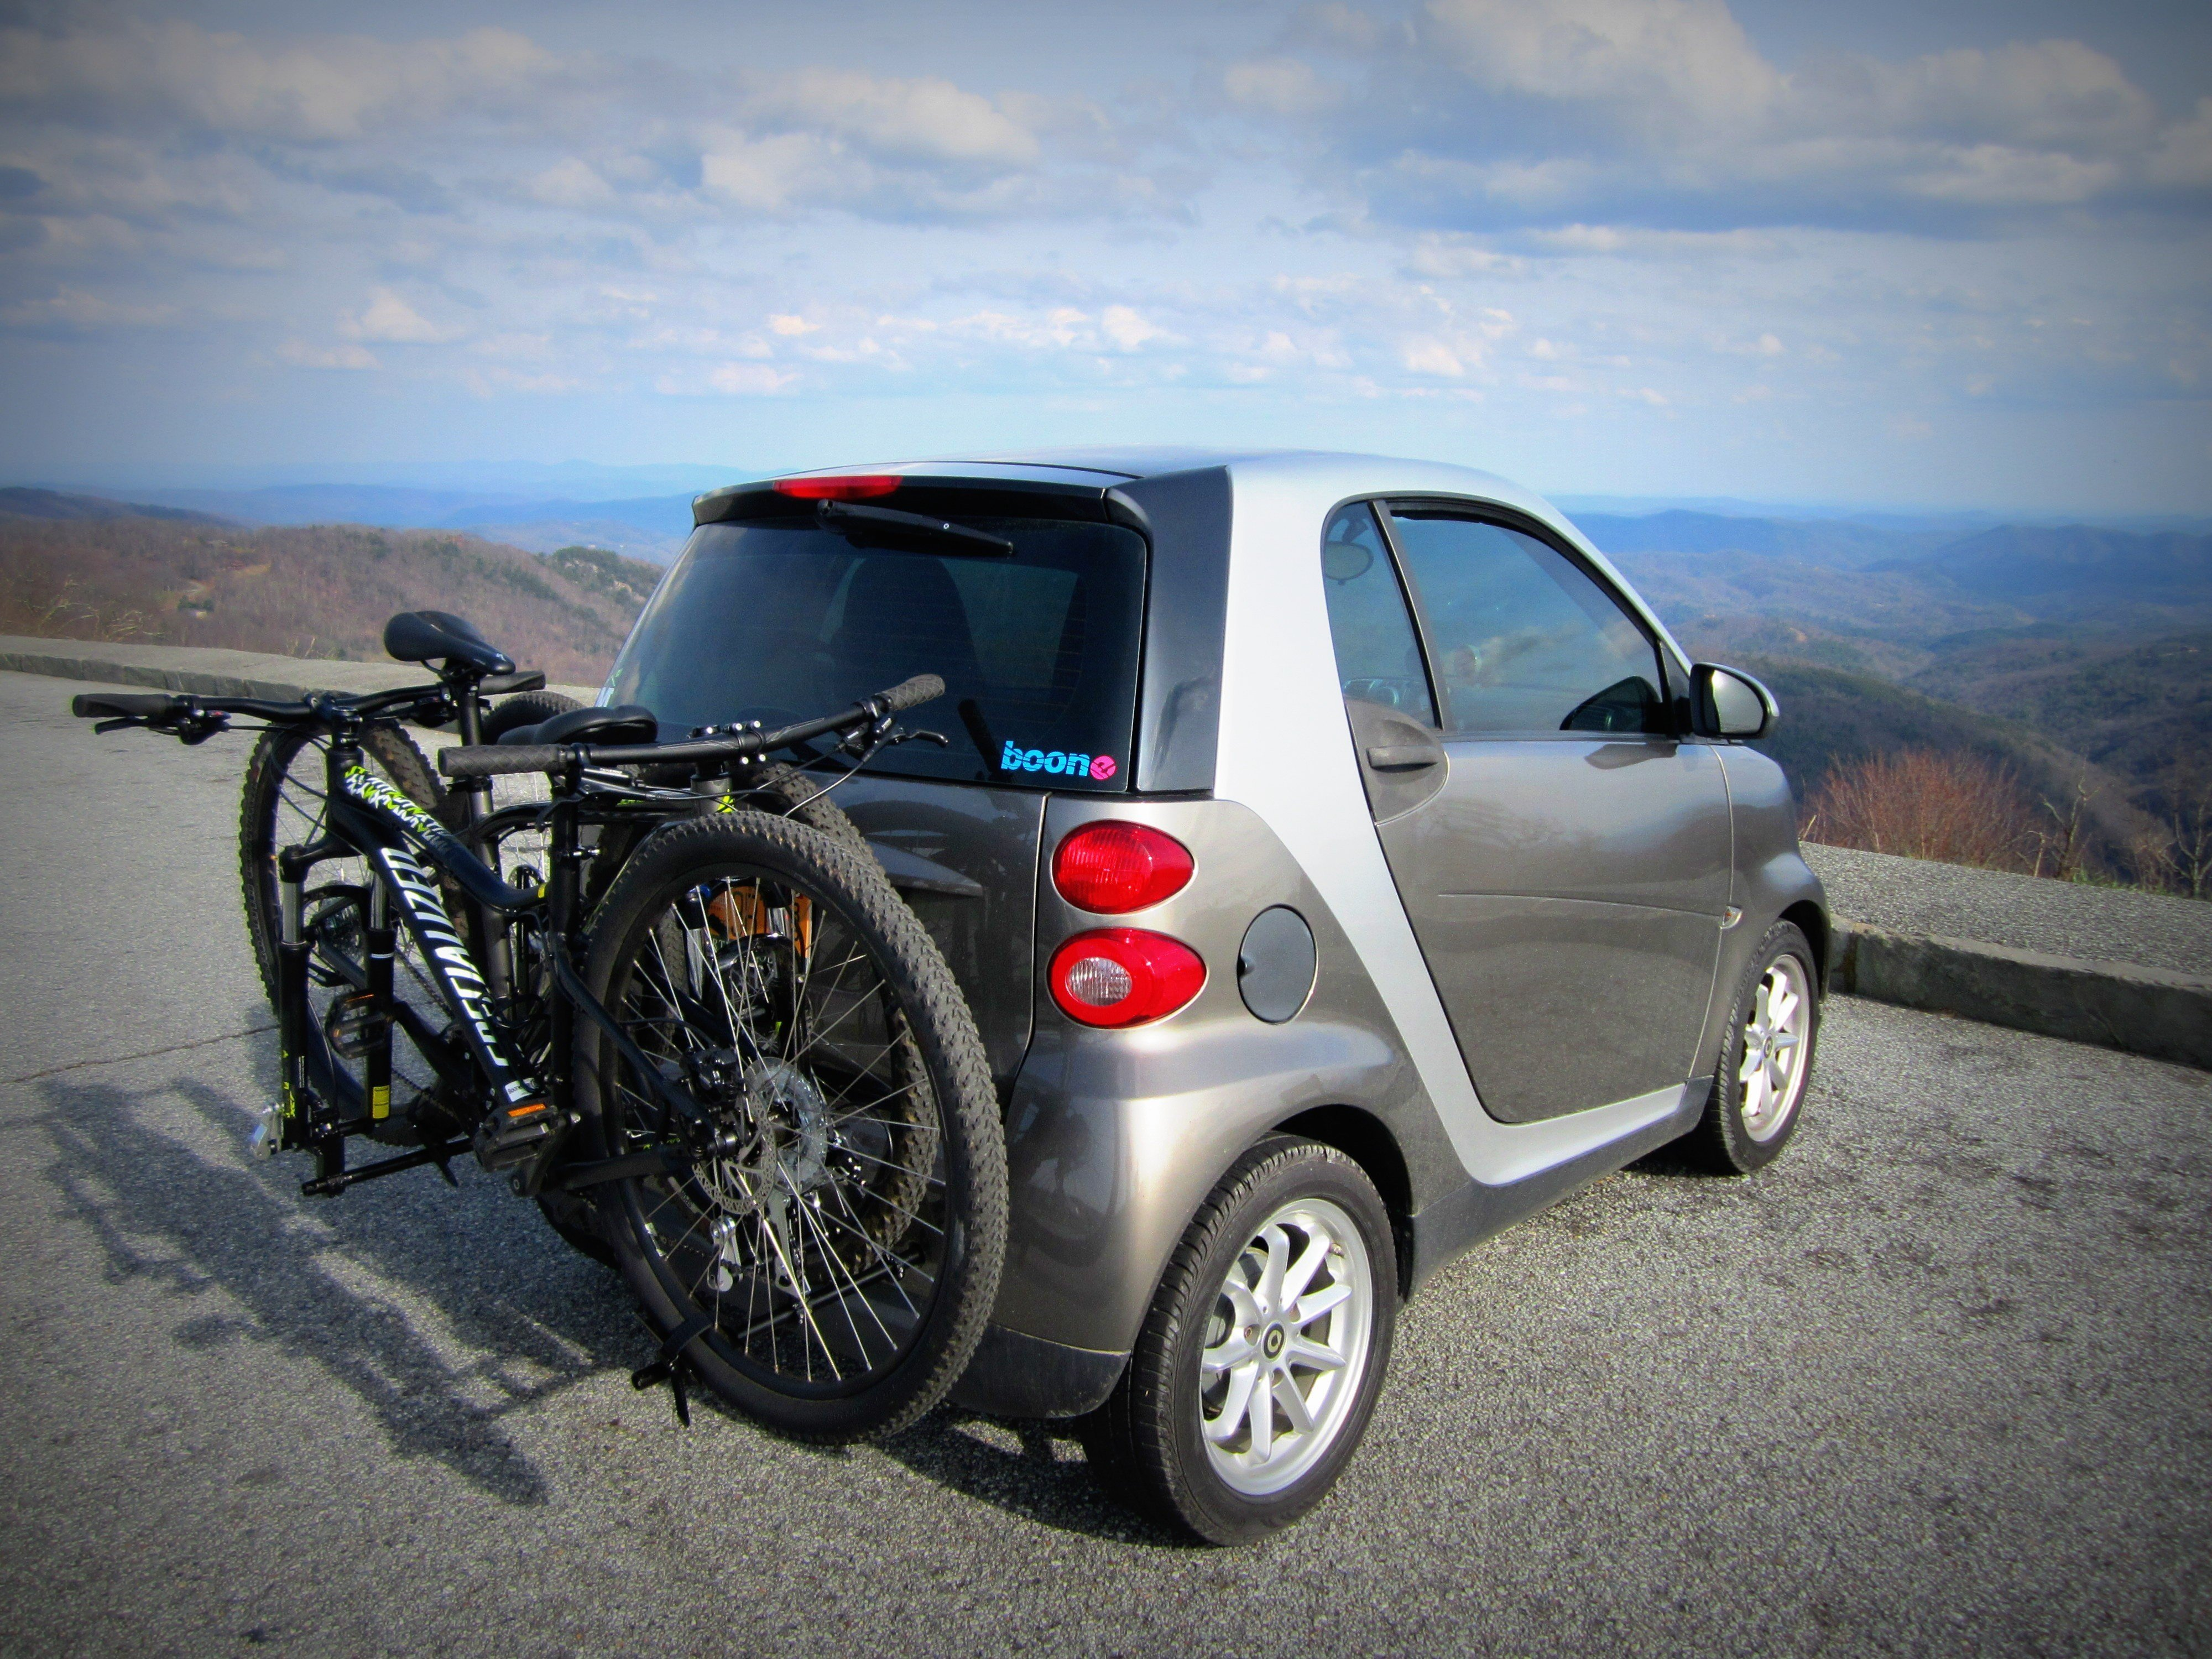 The Smart Car Bicycle Rack